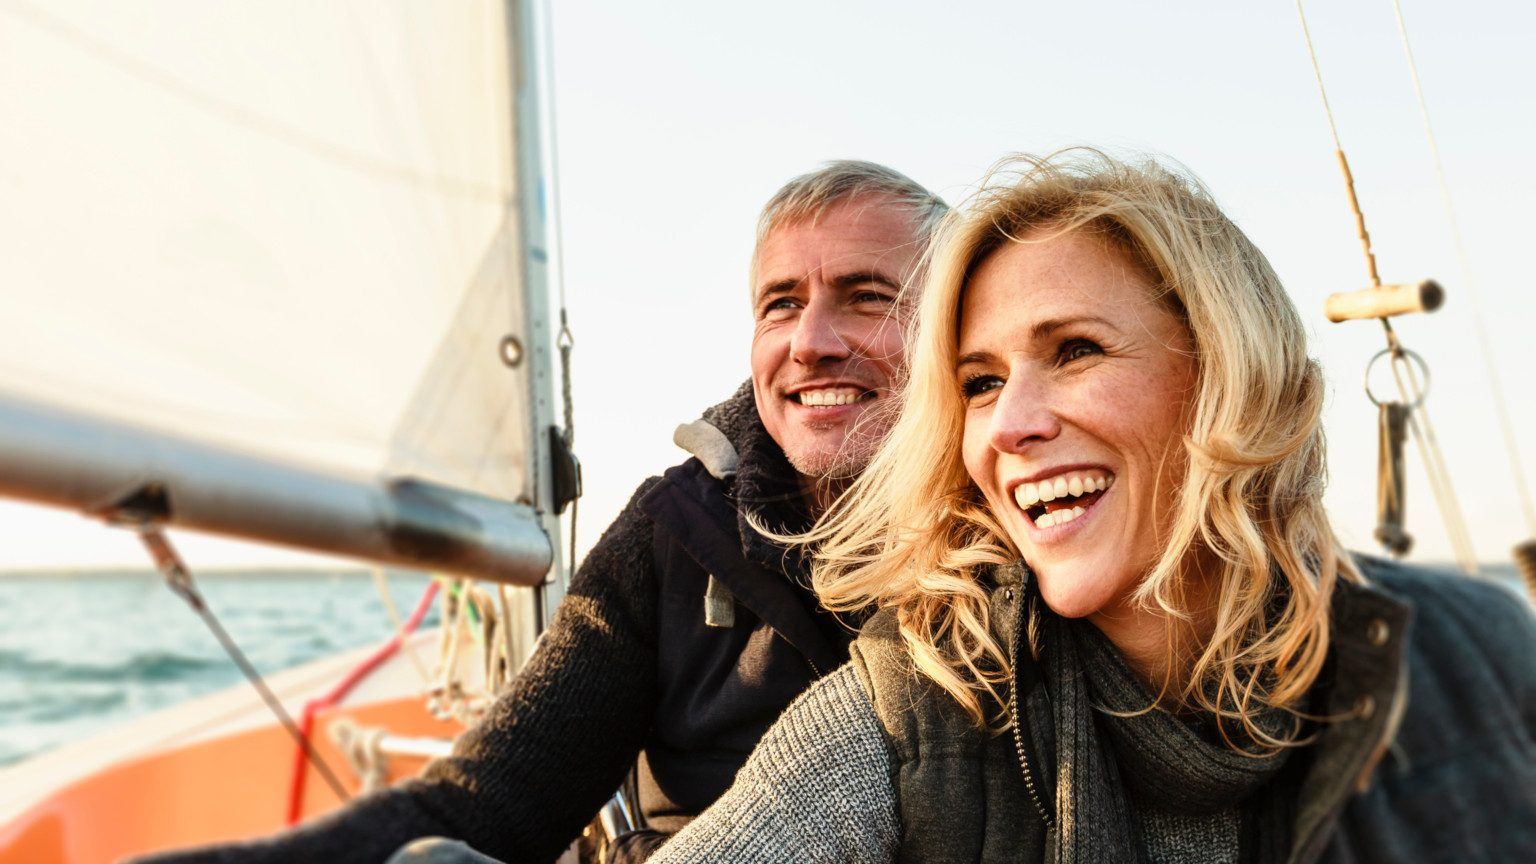 An older couple smiling on a sailing boat